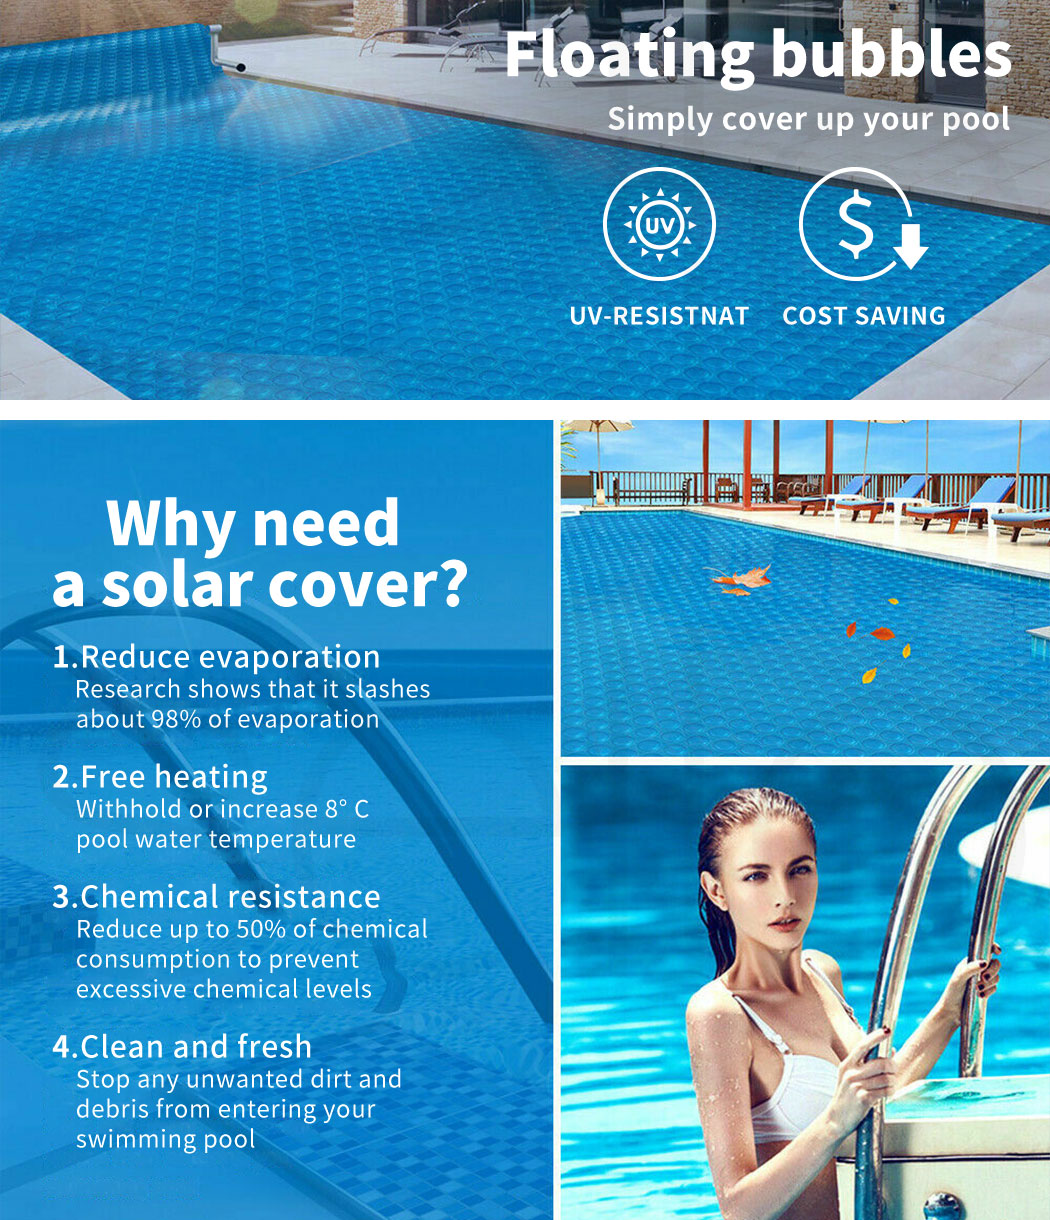 Solar-Swimming-Pool-Cover-400-500-Micron-Outdoor-Bubble-Blanket-Covers-7-Sizes thumbnail 83